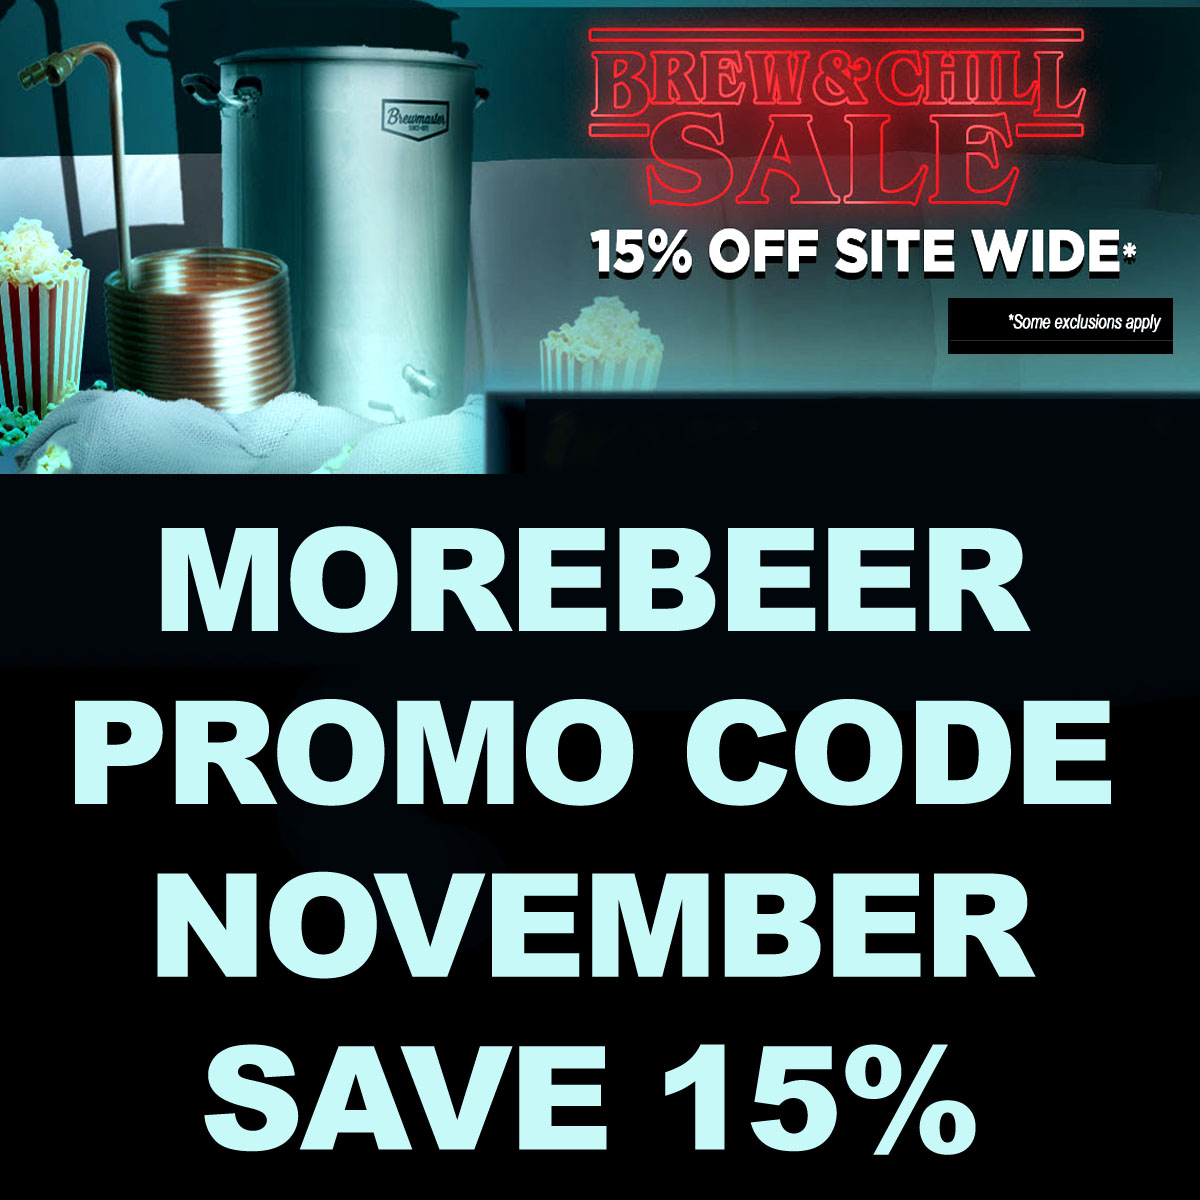 Home Wine Making Coupon Codes for Save 15% Site Wide at More Wine with this More Beer Promo Code Coupon Code